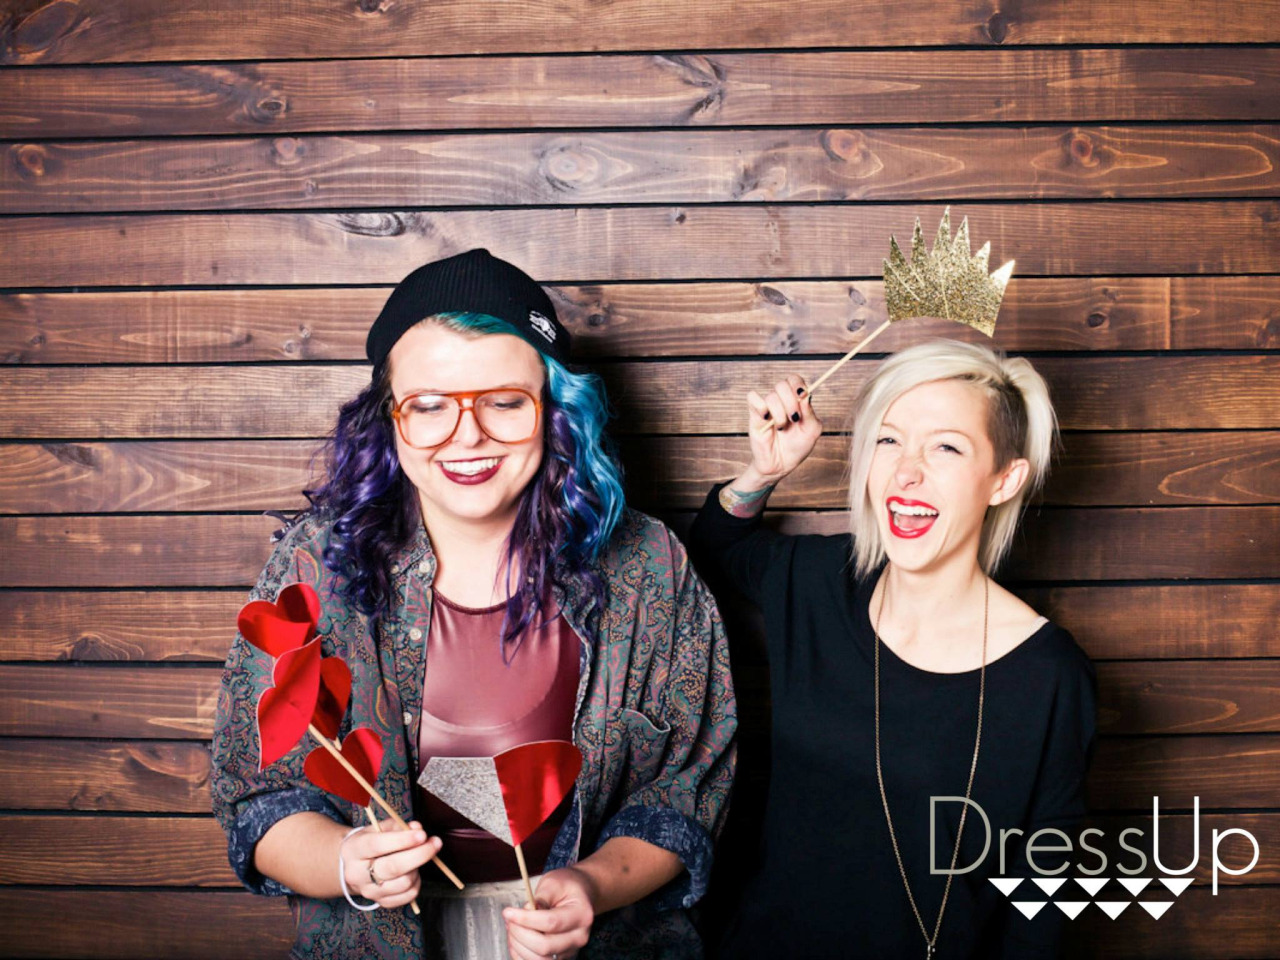 If you came to the  #dutrunkshow  a few weeks ago, the photo booth pictures are up! Just go to our Facebook site to see you and your friends looking wonderful in floral crowns and homemade props!     We love y'all!